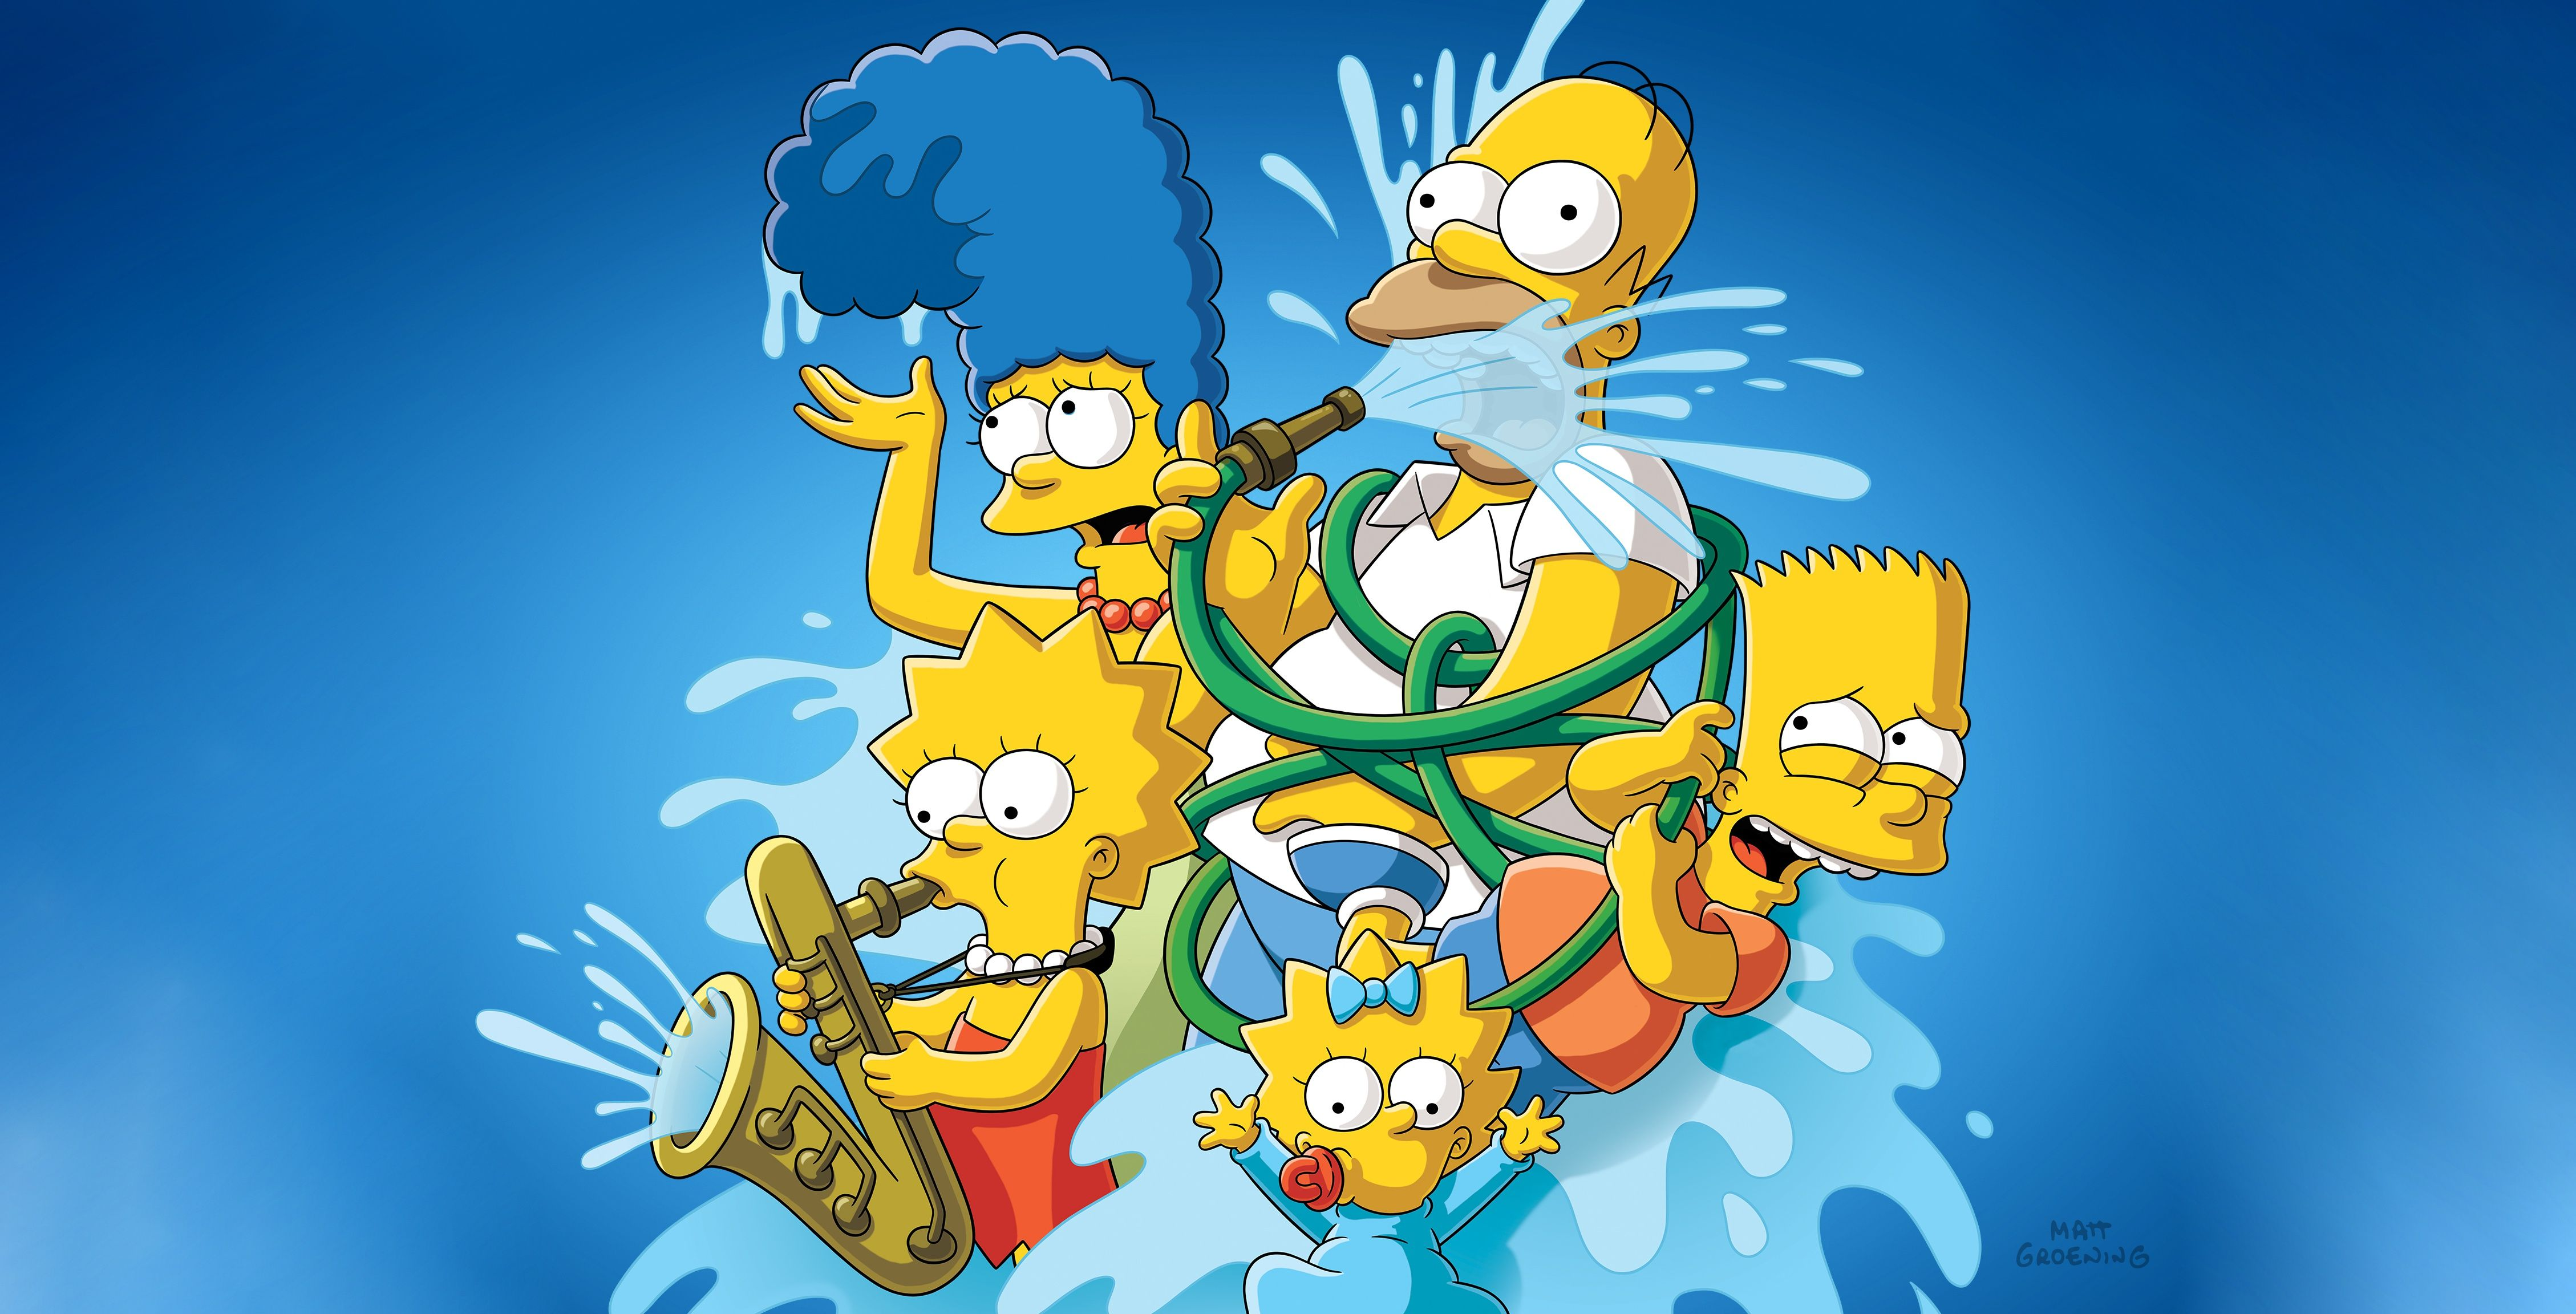 4516x2304 The Simpsons 4k, HD Cartoons, 4k Wallpapers, Images ...